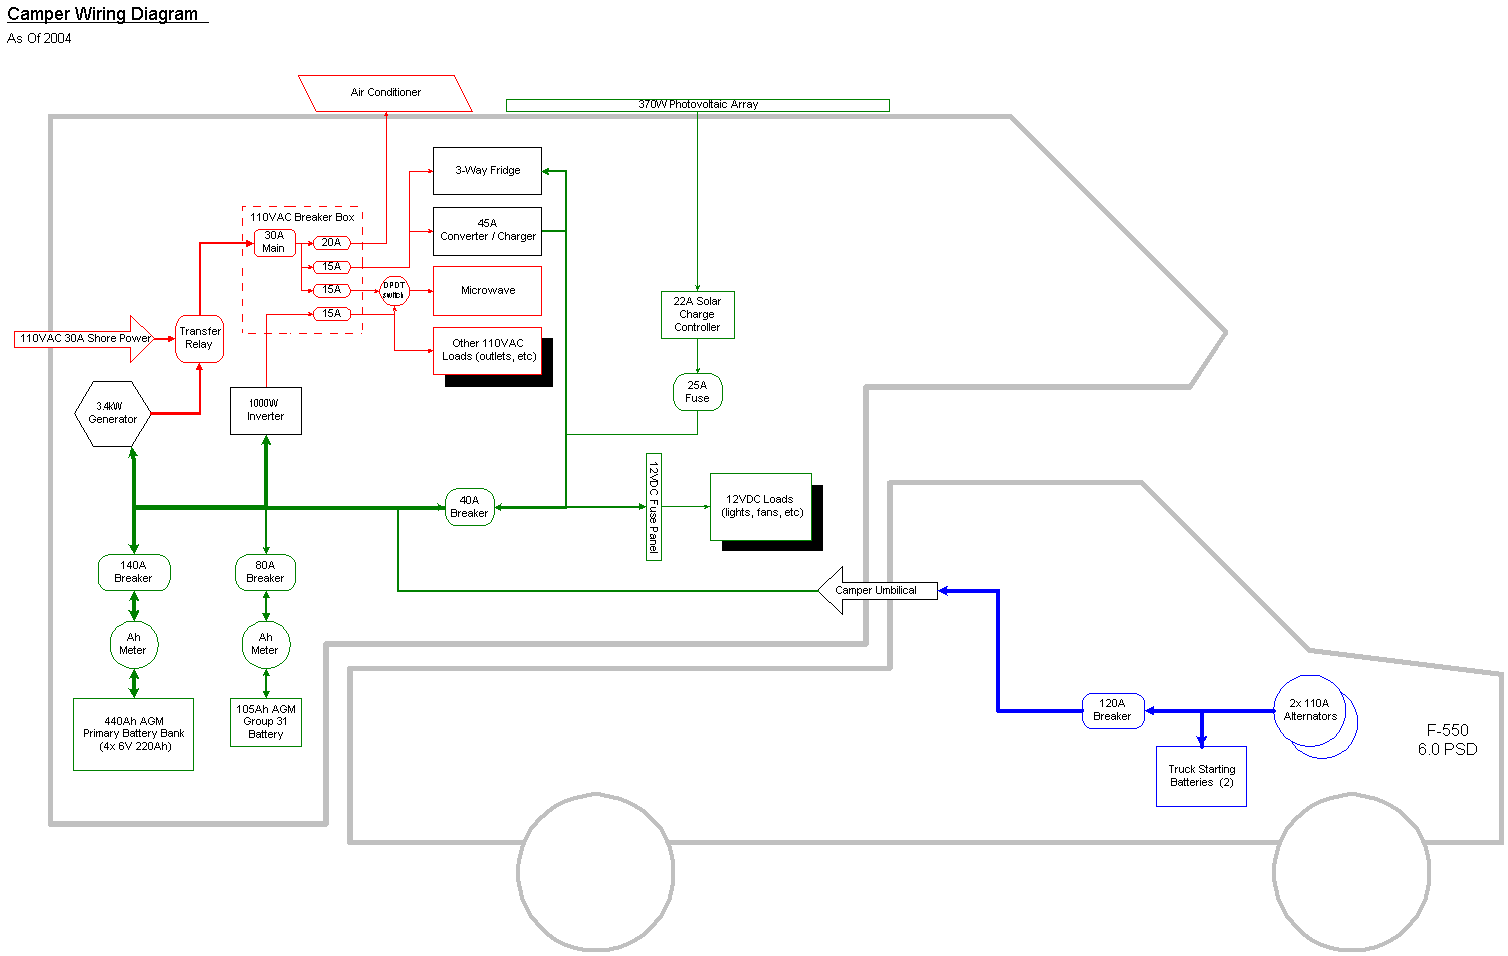 [DIAGRAM_38IS]  Camper To Truck Wiring Diagram - Av System Wiring Diagram for Wiring  Diagram Schematics | Camper Electrical Diagram |  | Wiring Diagram Schematics